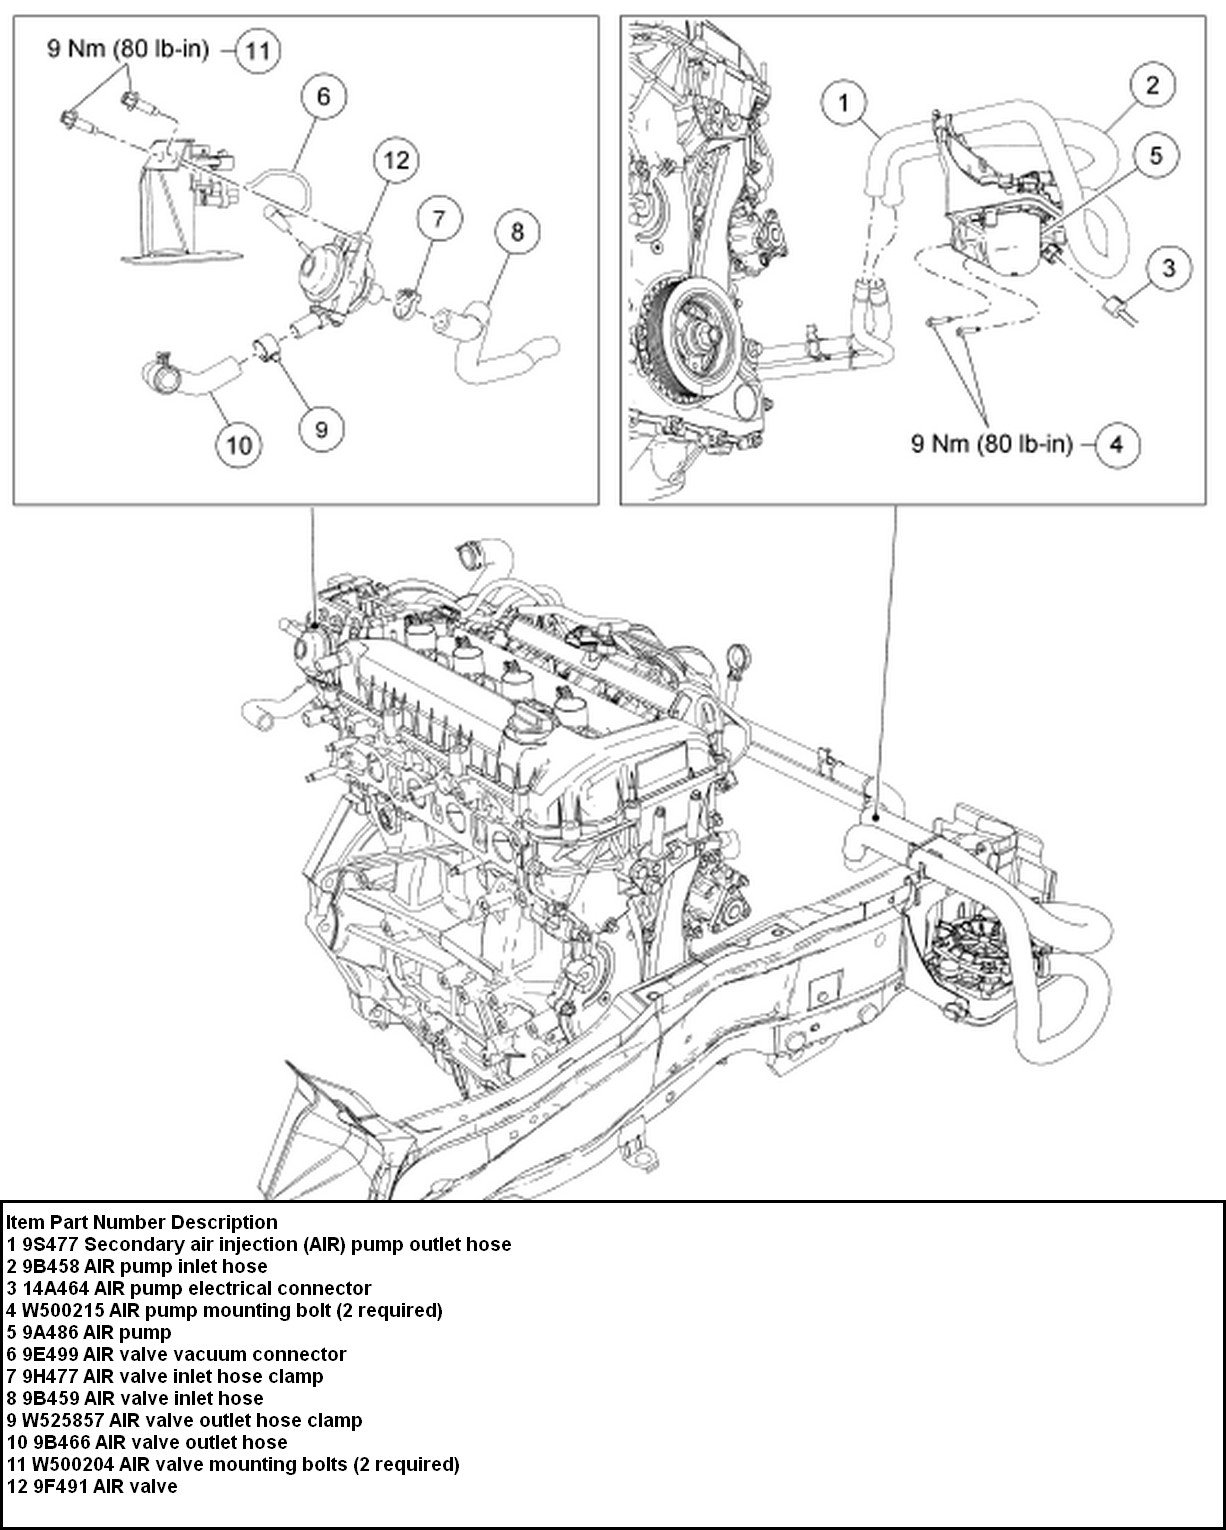 2005 Ford Thunderbird Engine Diagram Schematic Diagrams Focus Zx4 Download Wiring U2022 2003 Size